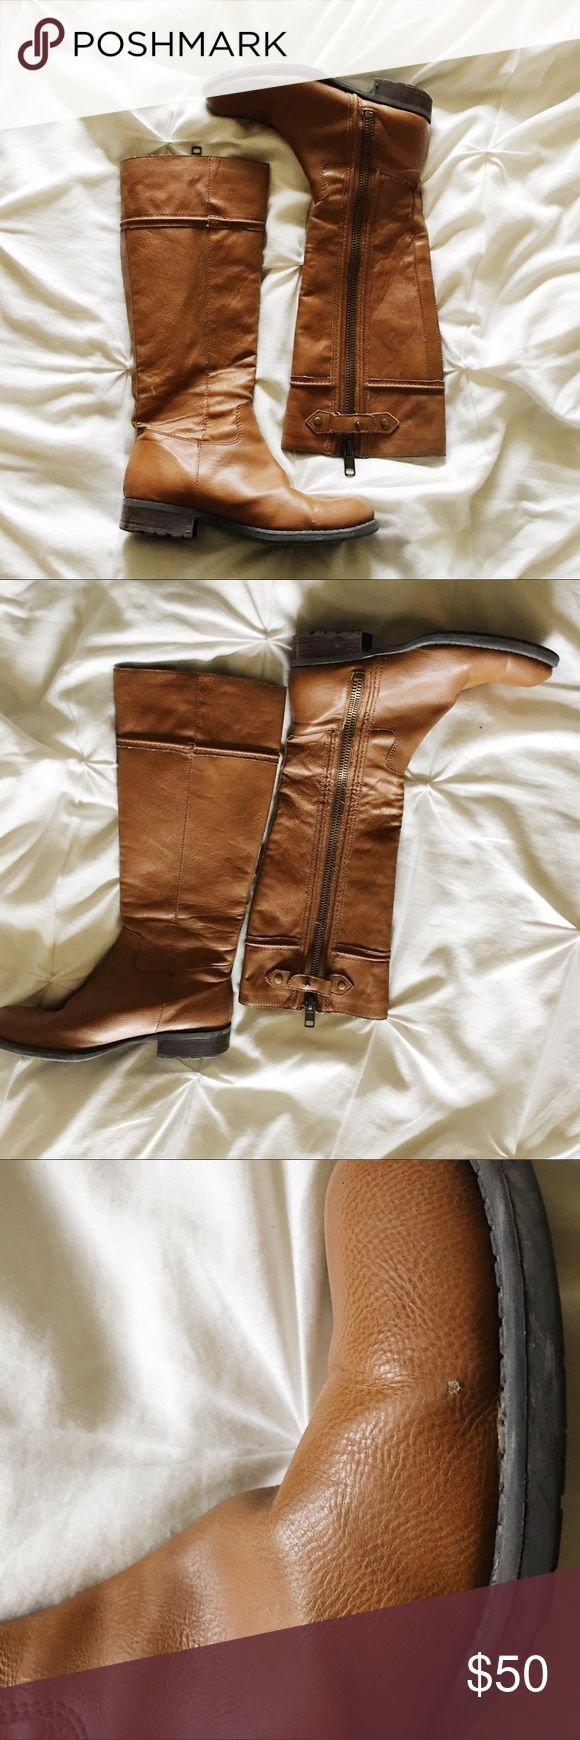 """Franco Sarto camel riding boots These versatile knee high boots belong in every closet. Good used condition - the soles and heels are in great shape but they have a manmade upper and the lining does get loose strings that have to be clipped from time to time. 15"""" calf circumference. No box or bag, smoke and pet free home. Franco Sarto Shoes"""